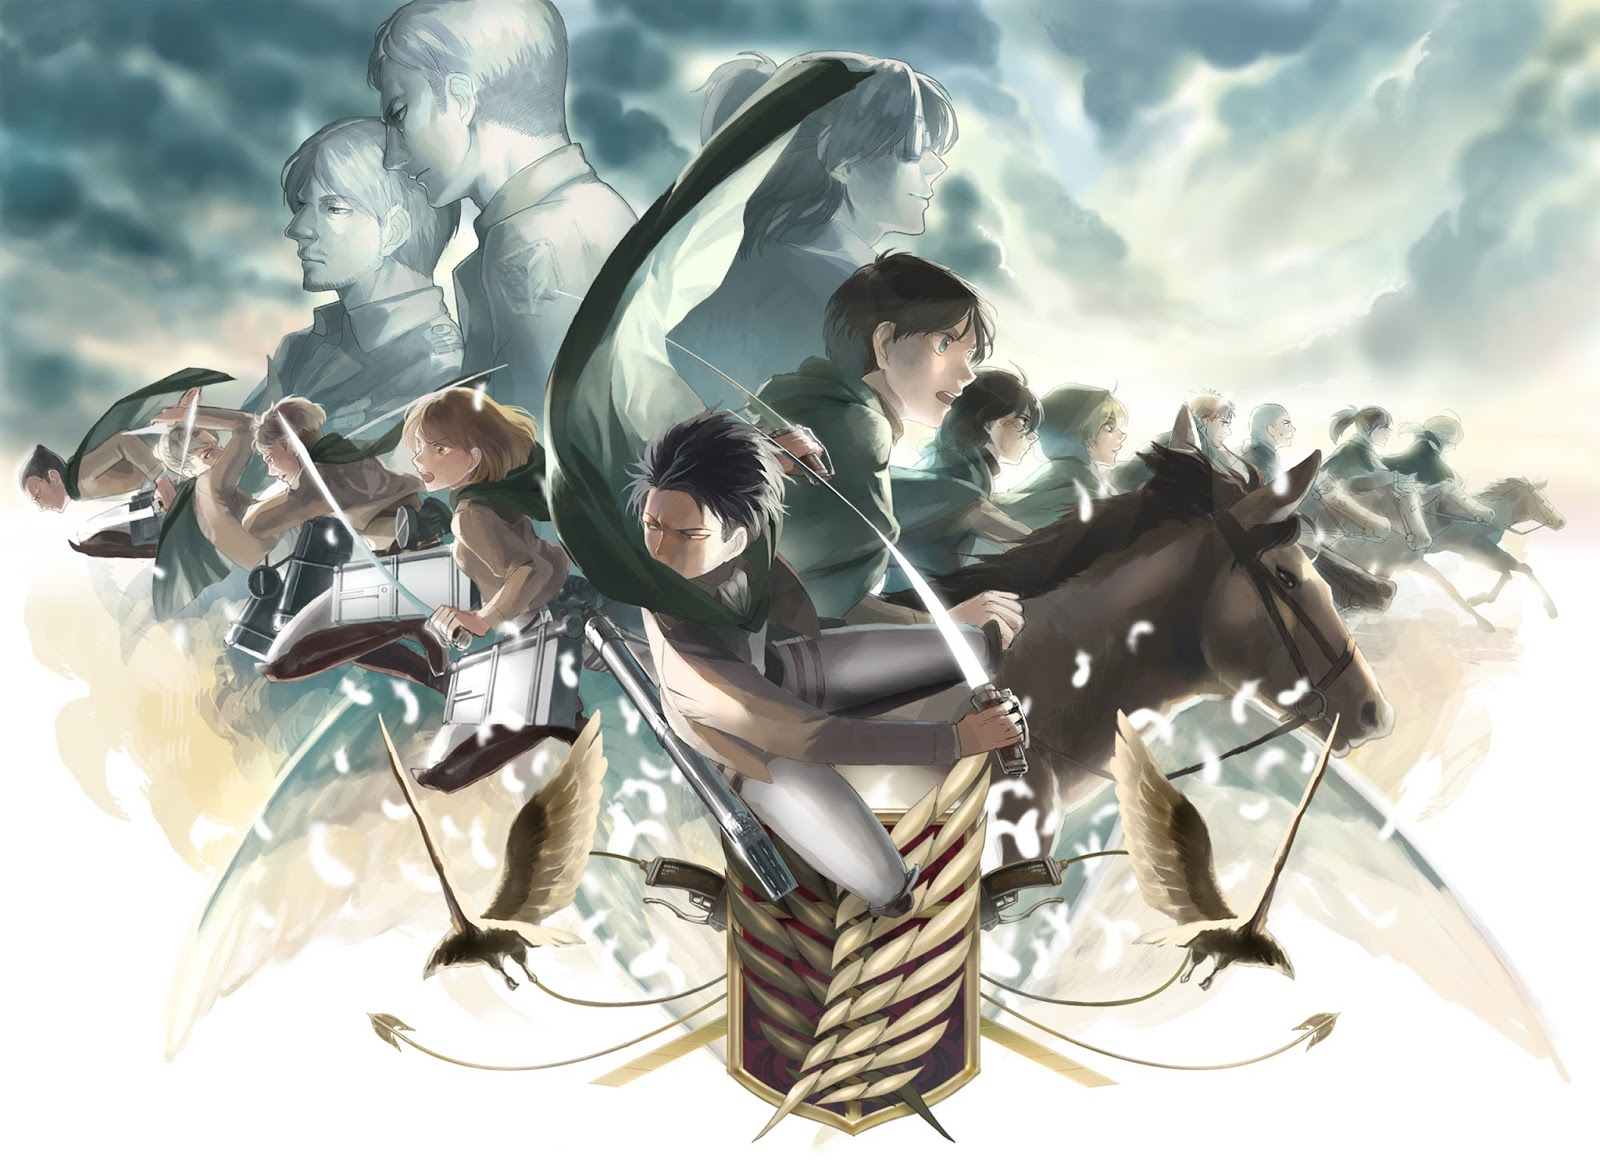 Scouting and Shingeki no kyojin on Pinterest